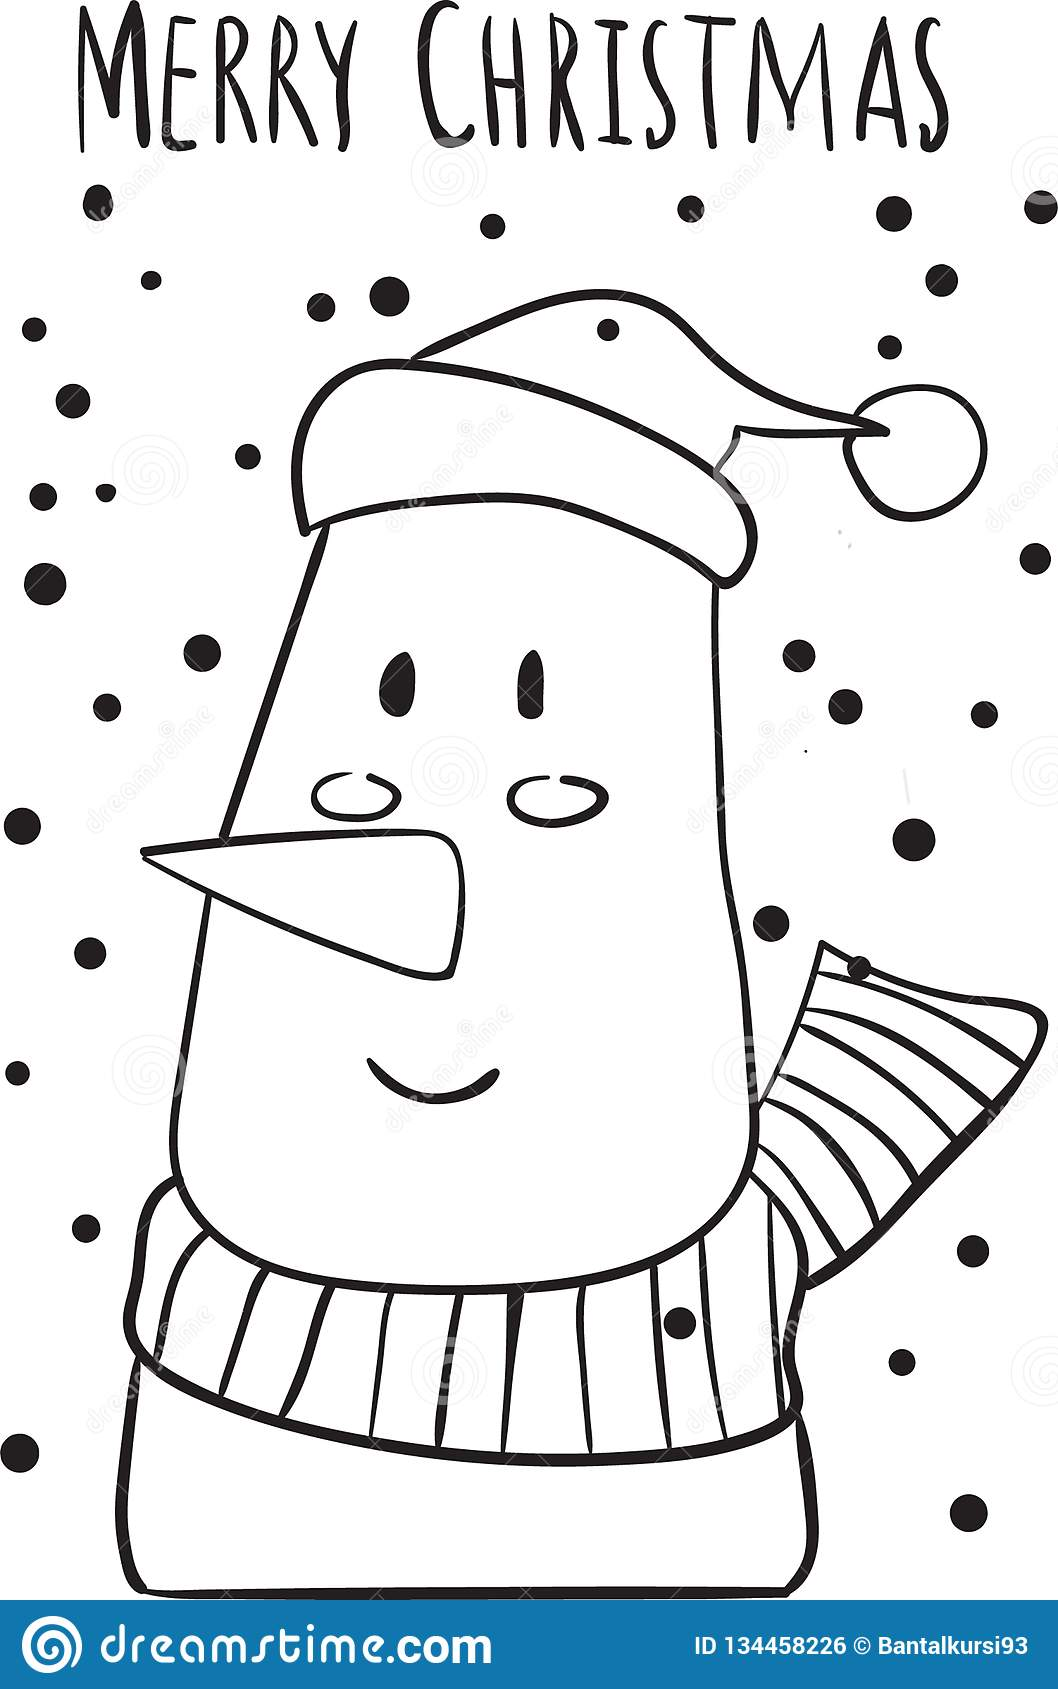 Christmas Snowman Coloring Page For Kid Stock Vector Illustration Of Children Winter 134458226